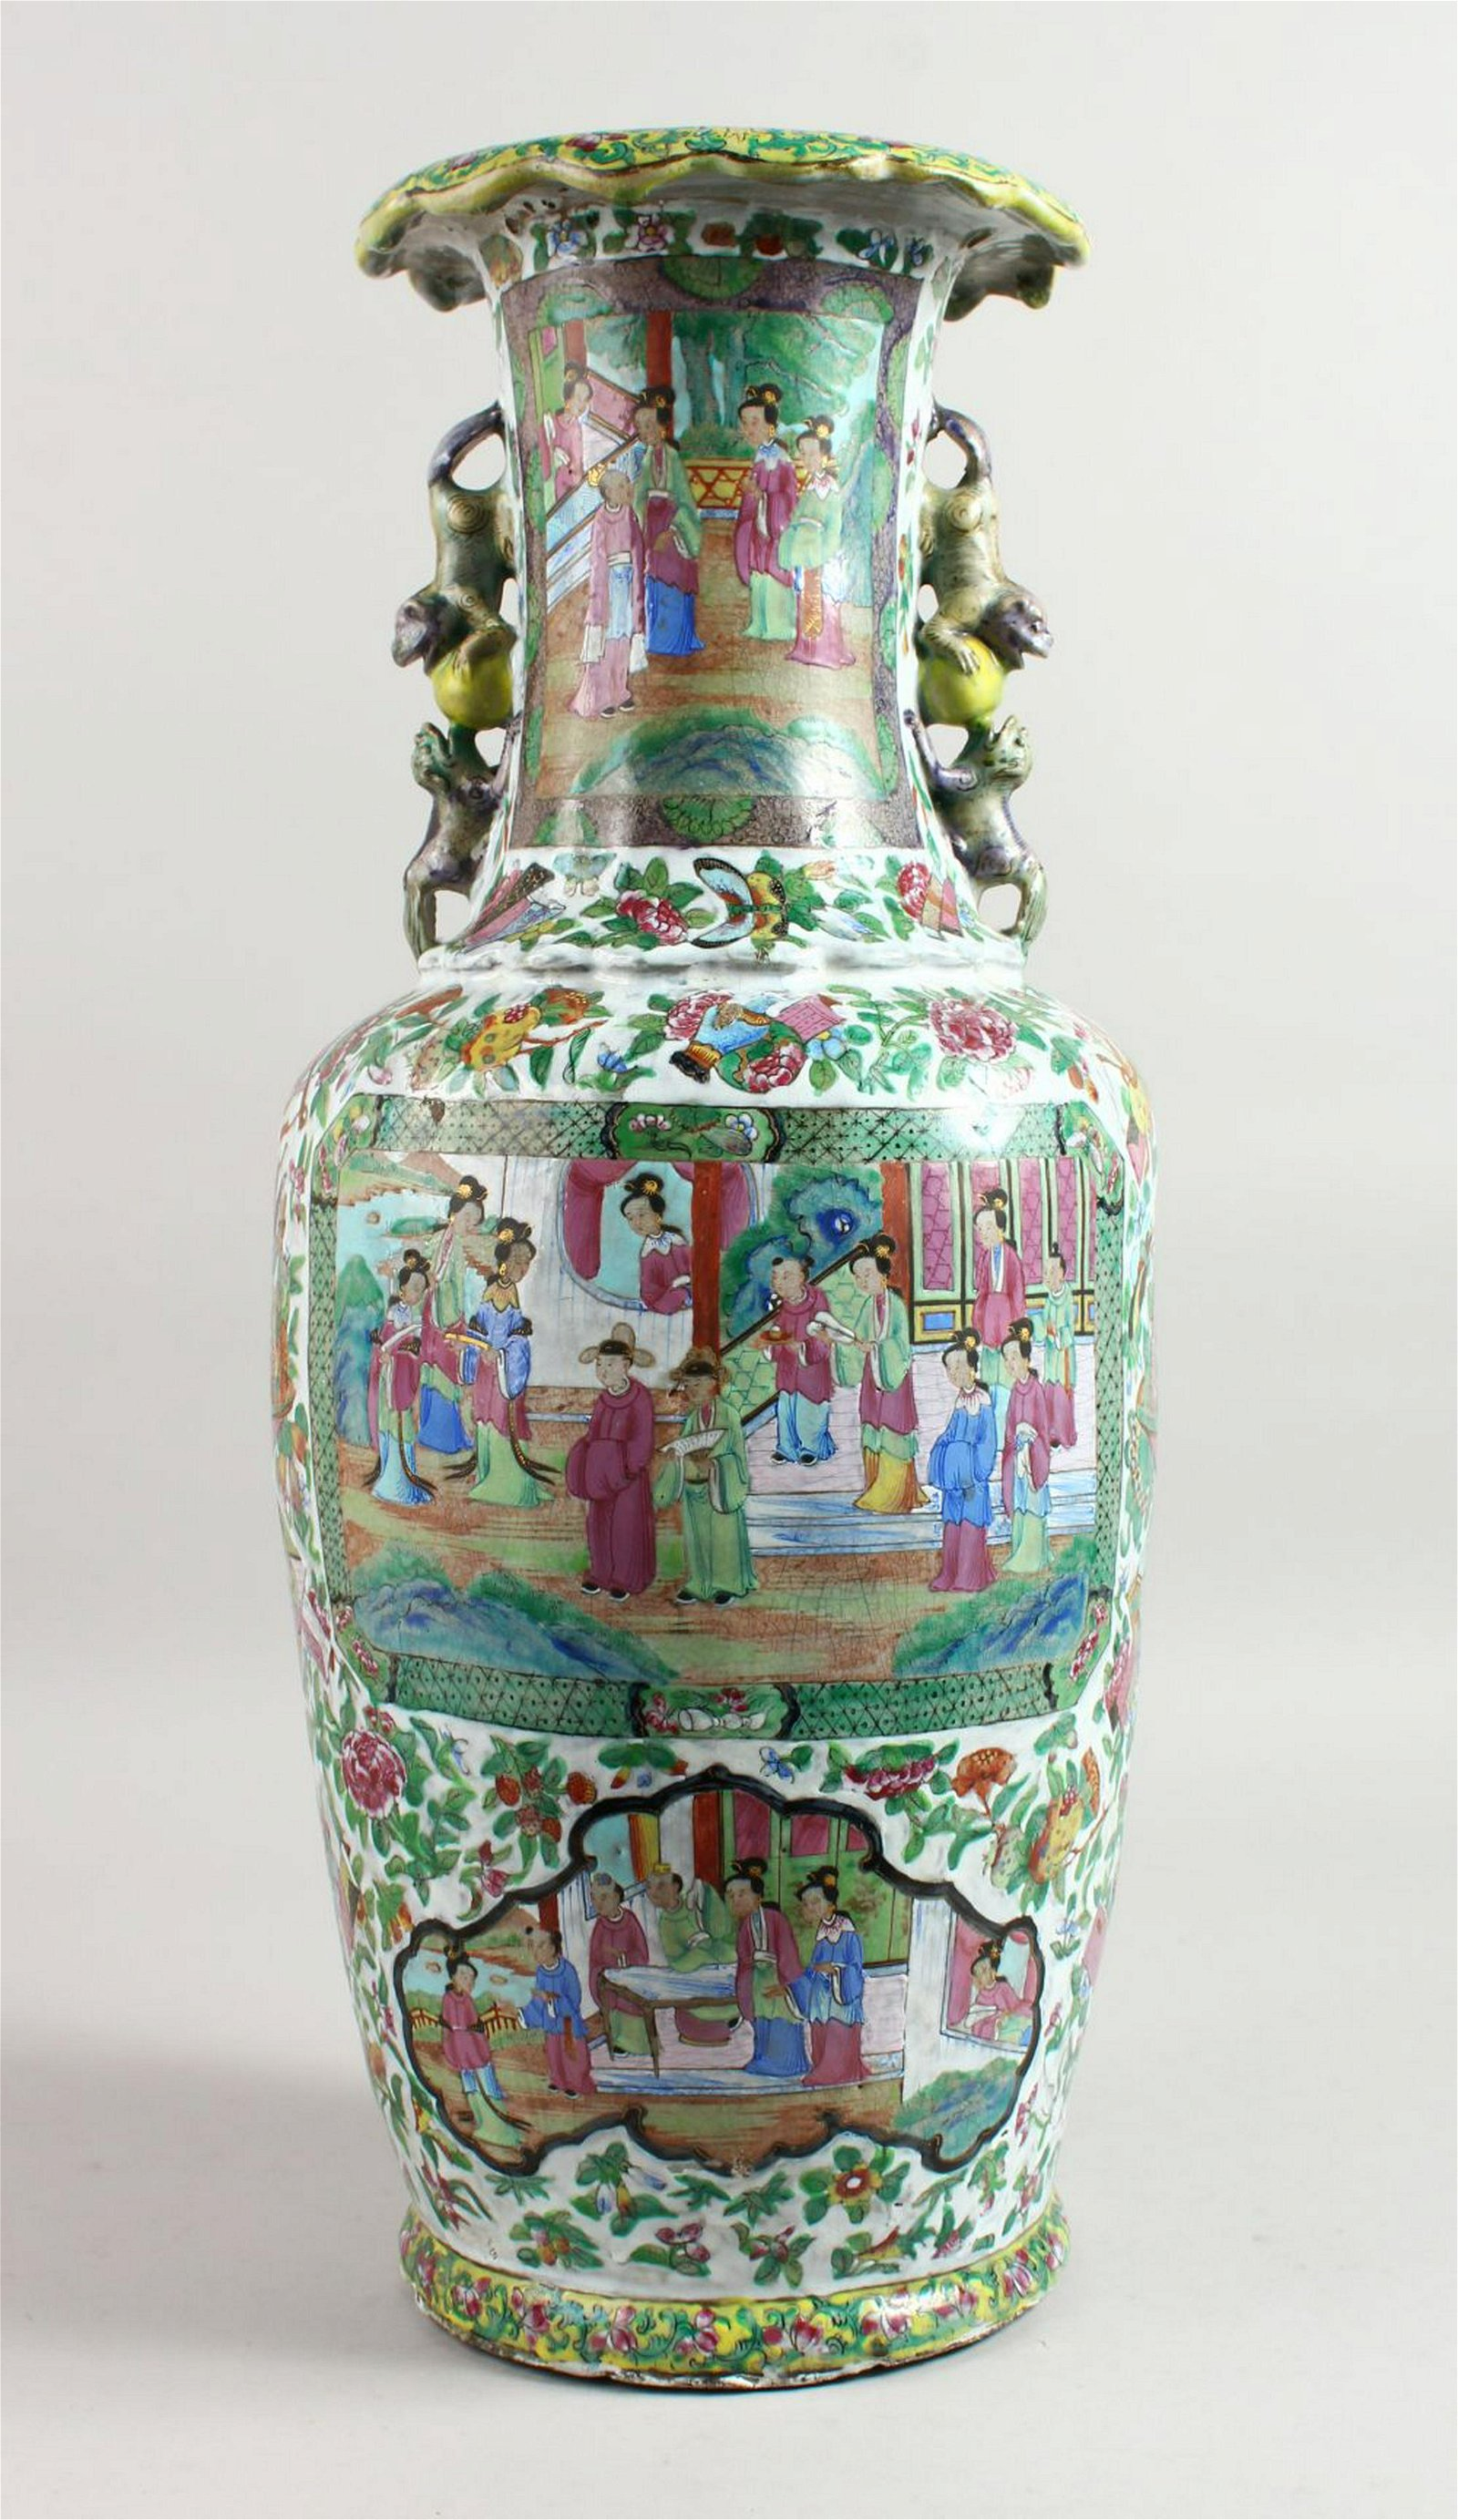 A LARGE CHINESE FAMILLE ROSE VASE with panels of